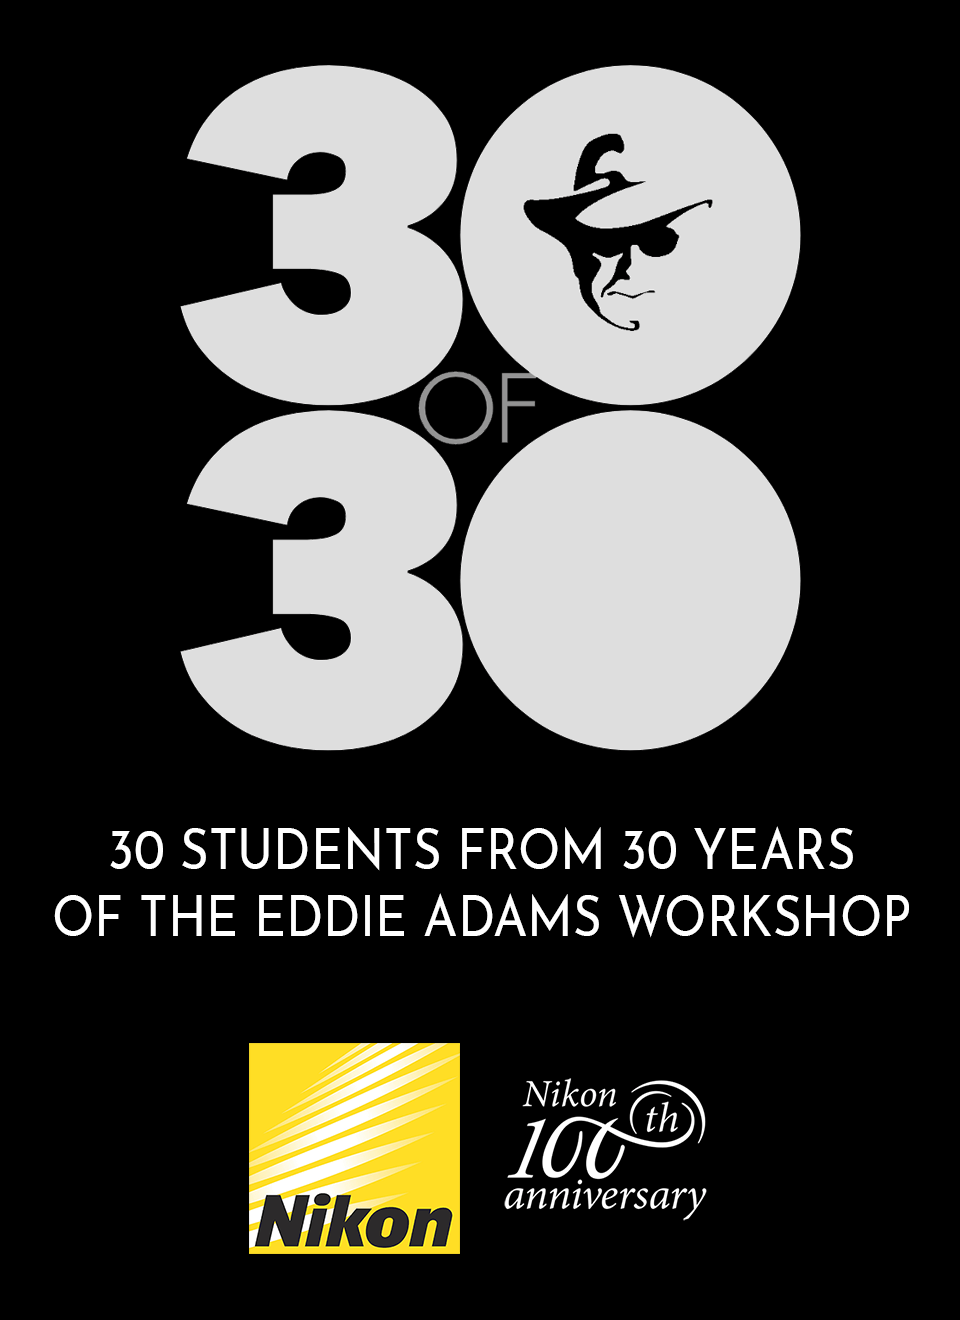 30 Students from 30 Years of the Eddie Adams Workshop